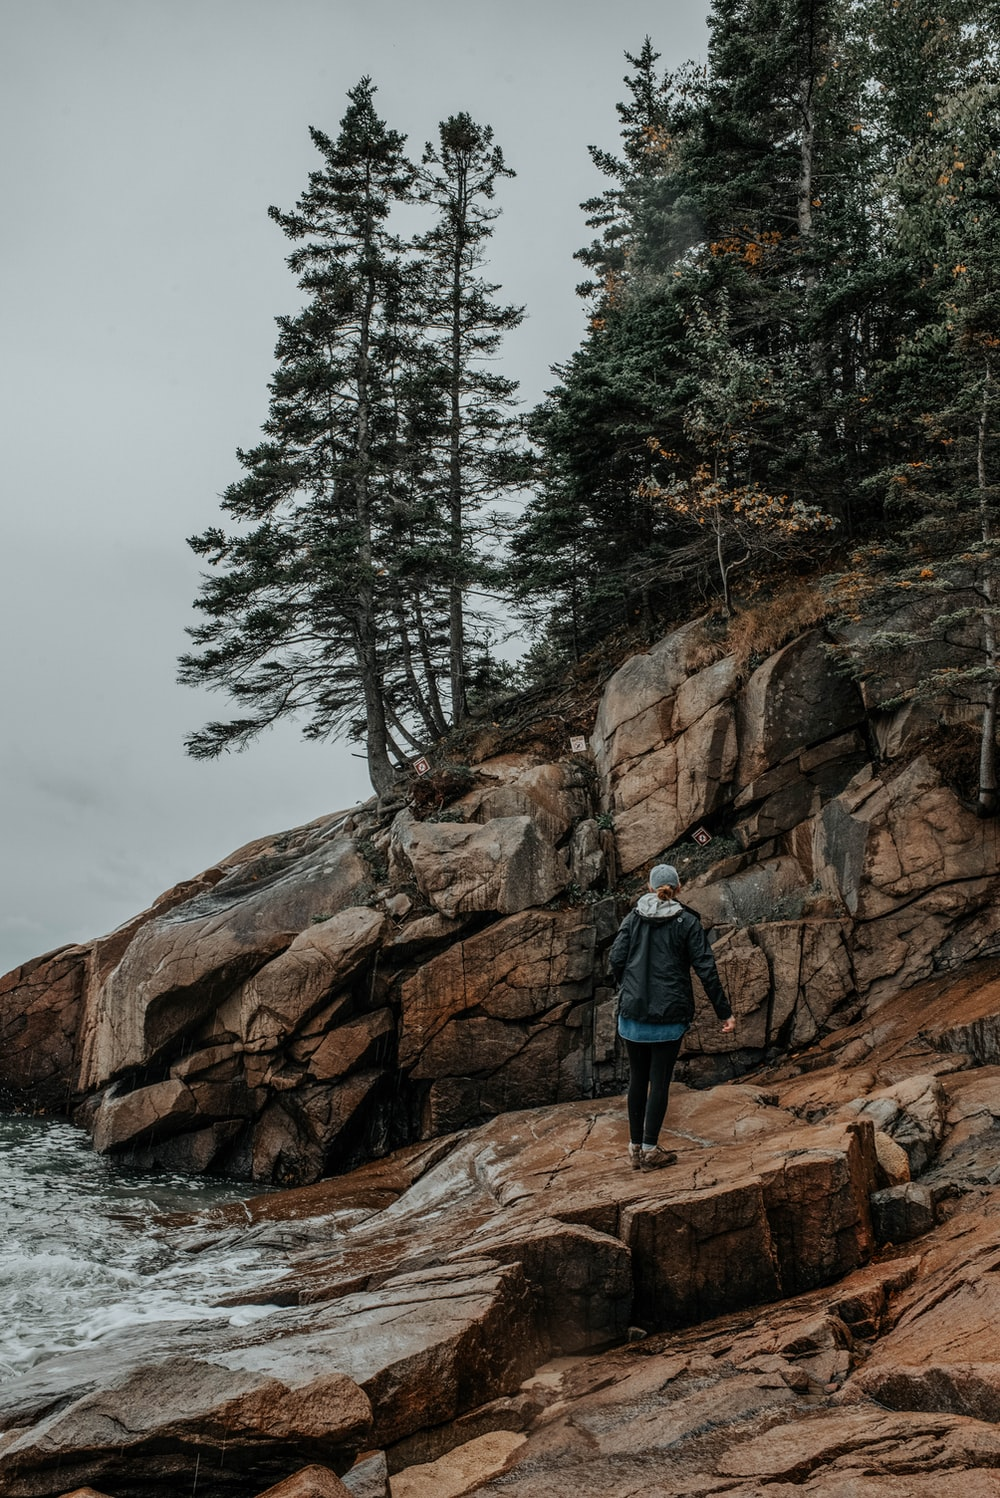 person stands on rock beside body of water